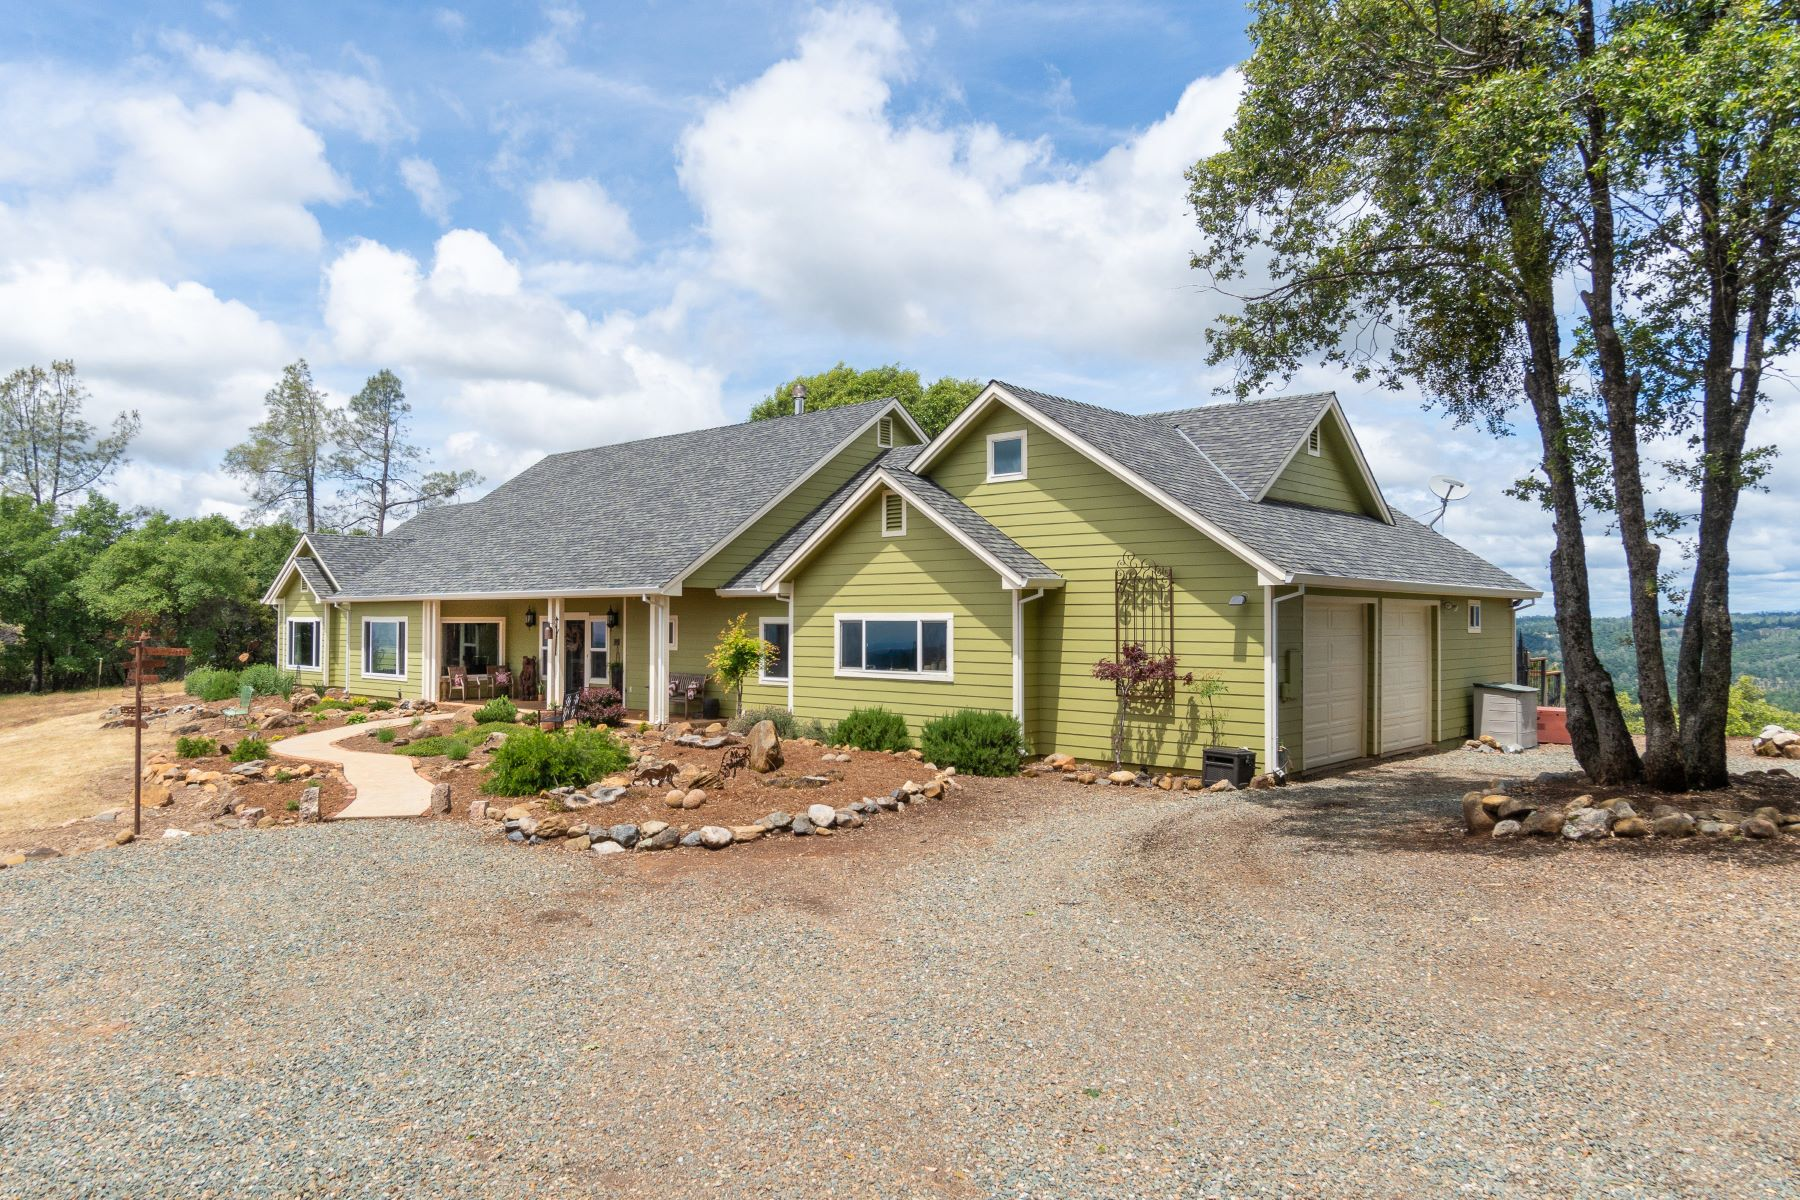 Single Family Homes for Active at 16671 Stone Jug Road, Sutter Creek, CA 95685 16671 Stone Jug Road Sutter Creek, California 95685 United States